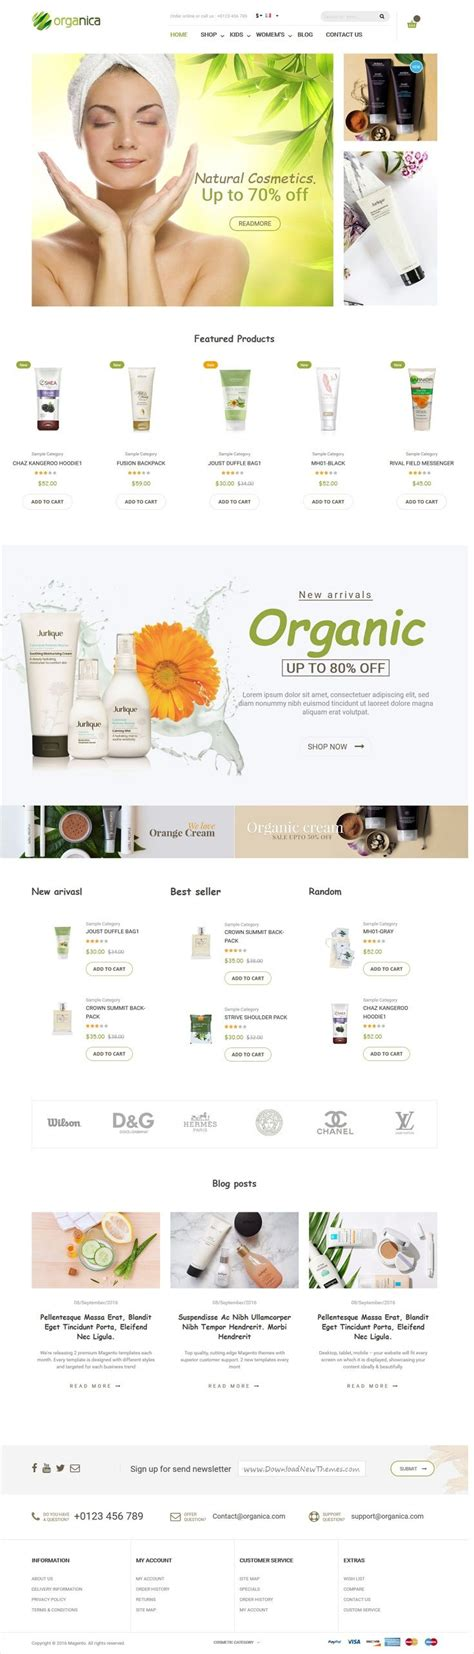 themeforest organica 1000 ideas about store layout on pinterest convenience